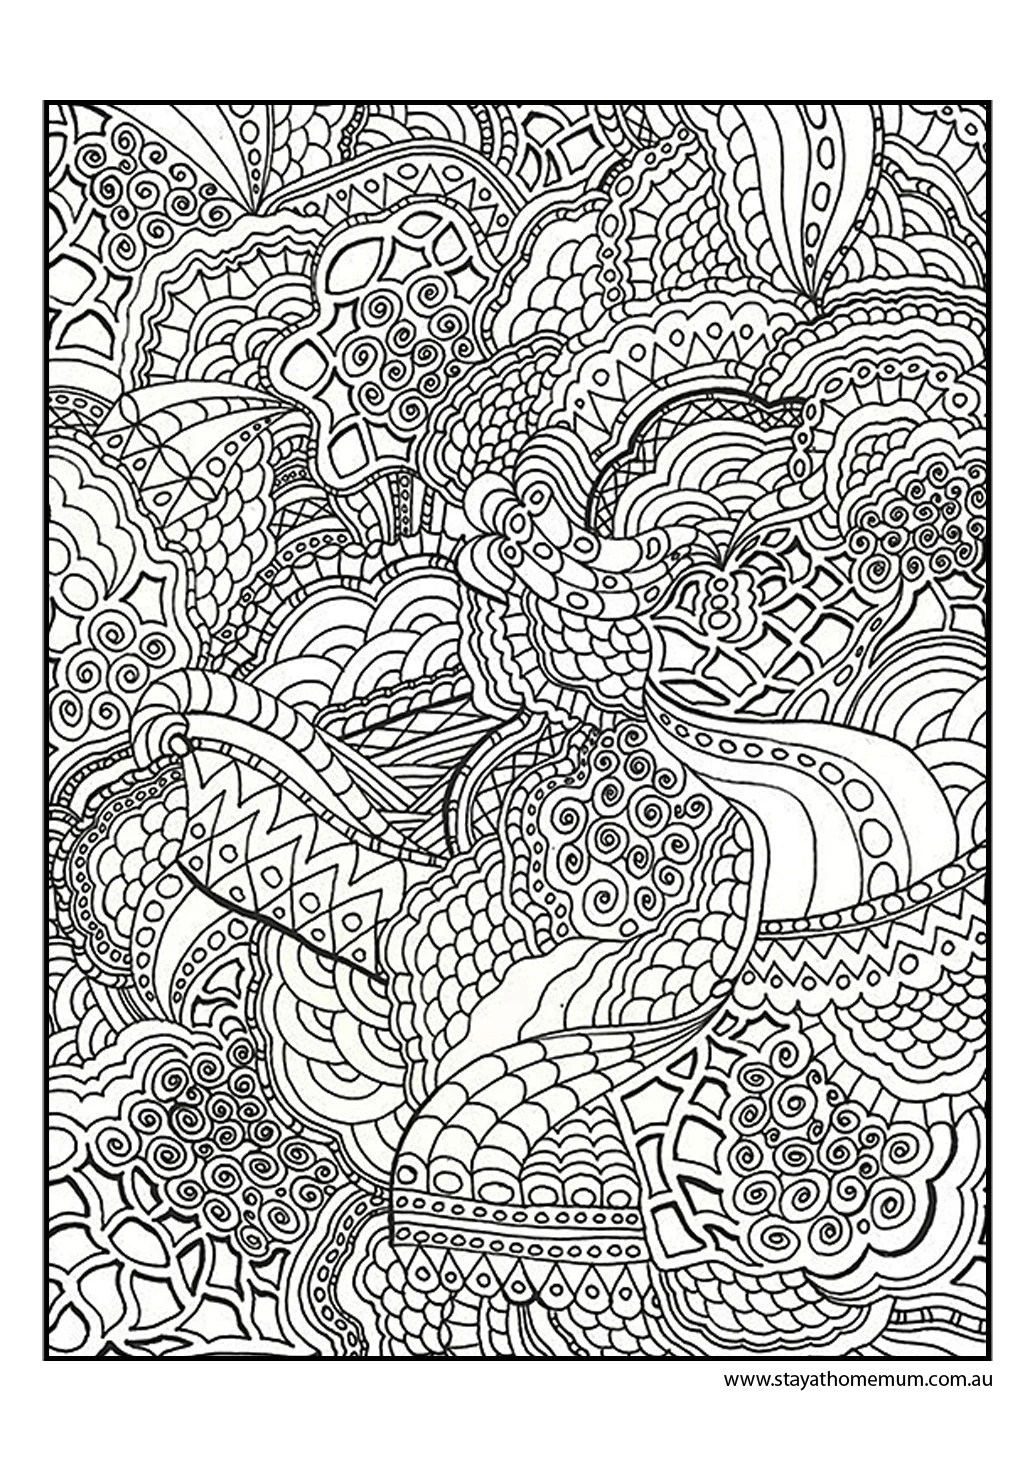 Printable Colouring Pages for Kids and Adults | free fun coloring pages for adults